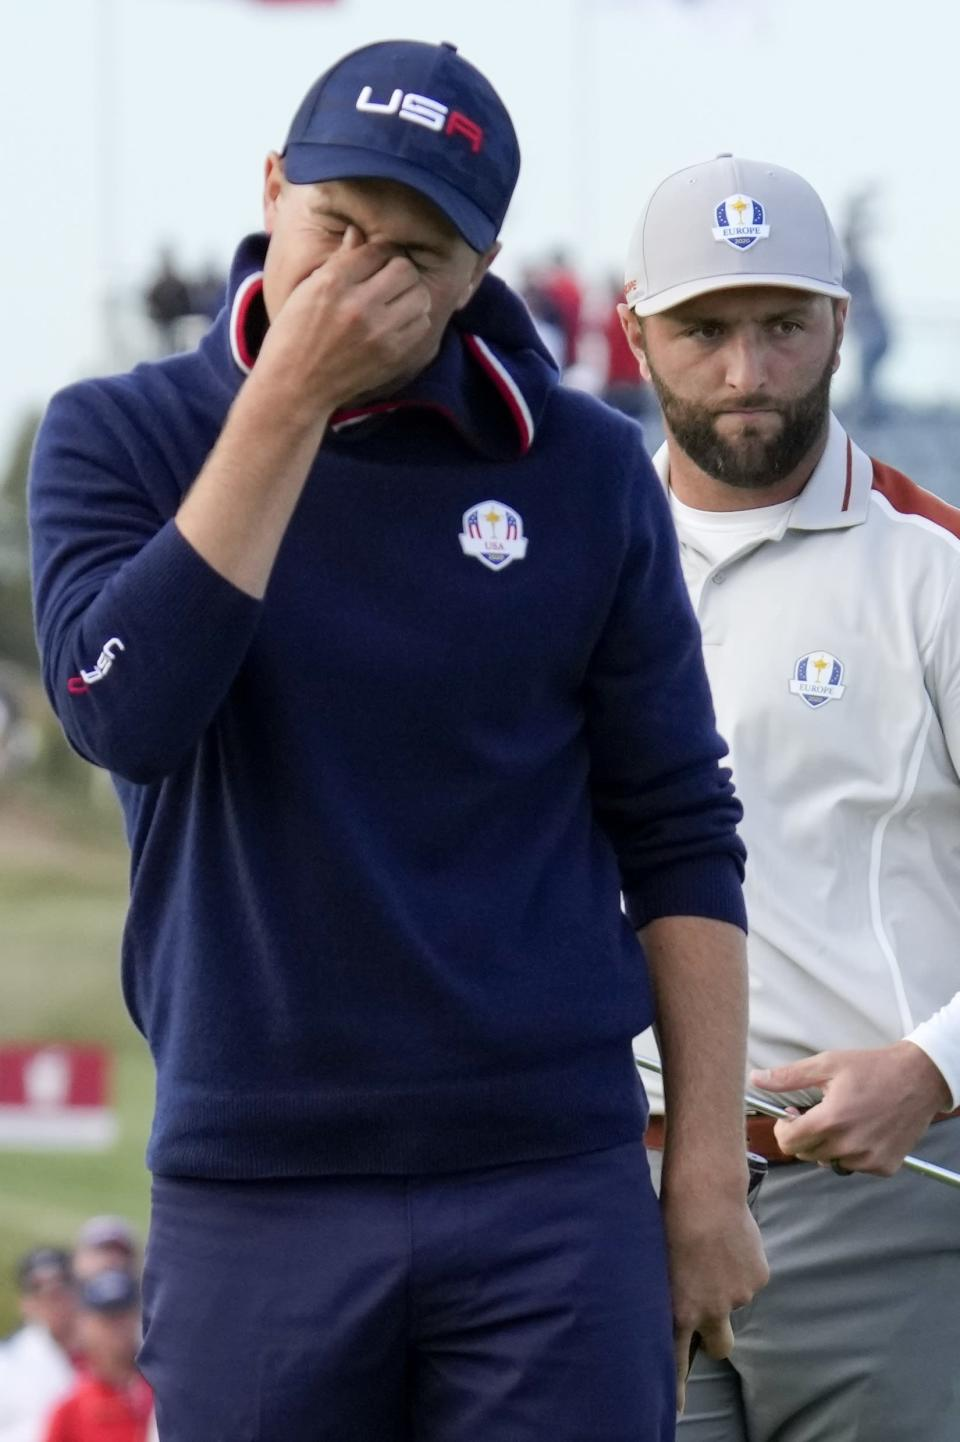 Team USA's Jordan Spieth reacts to his missed putt on the 15th hole during a four-ball match the Ryder Cup at the Whistling Straits Golf Course Saturday, Sept. 25, 2021, in Sheboygan, Wis. (AP Photo/Ashley Landis)